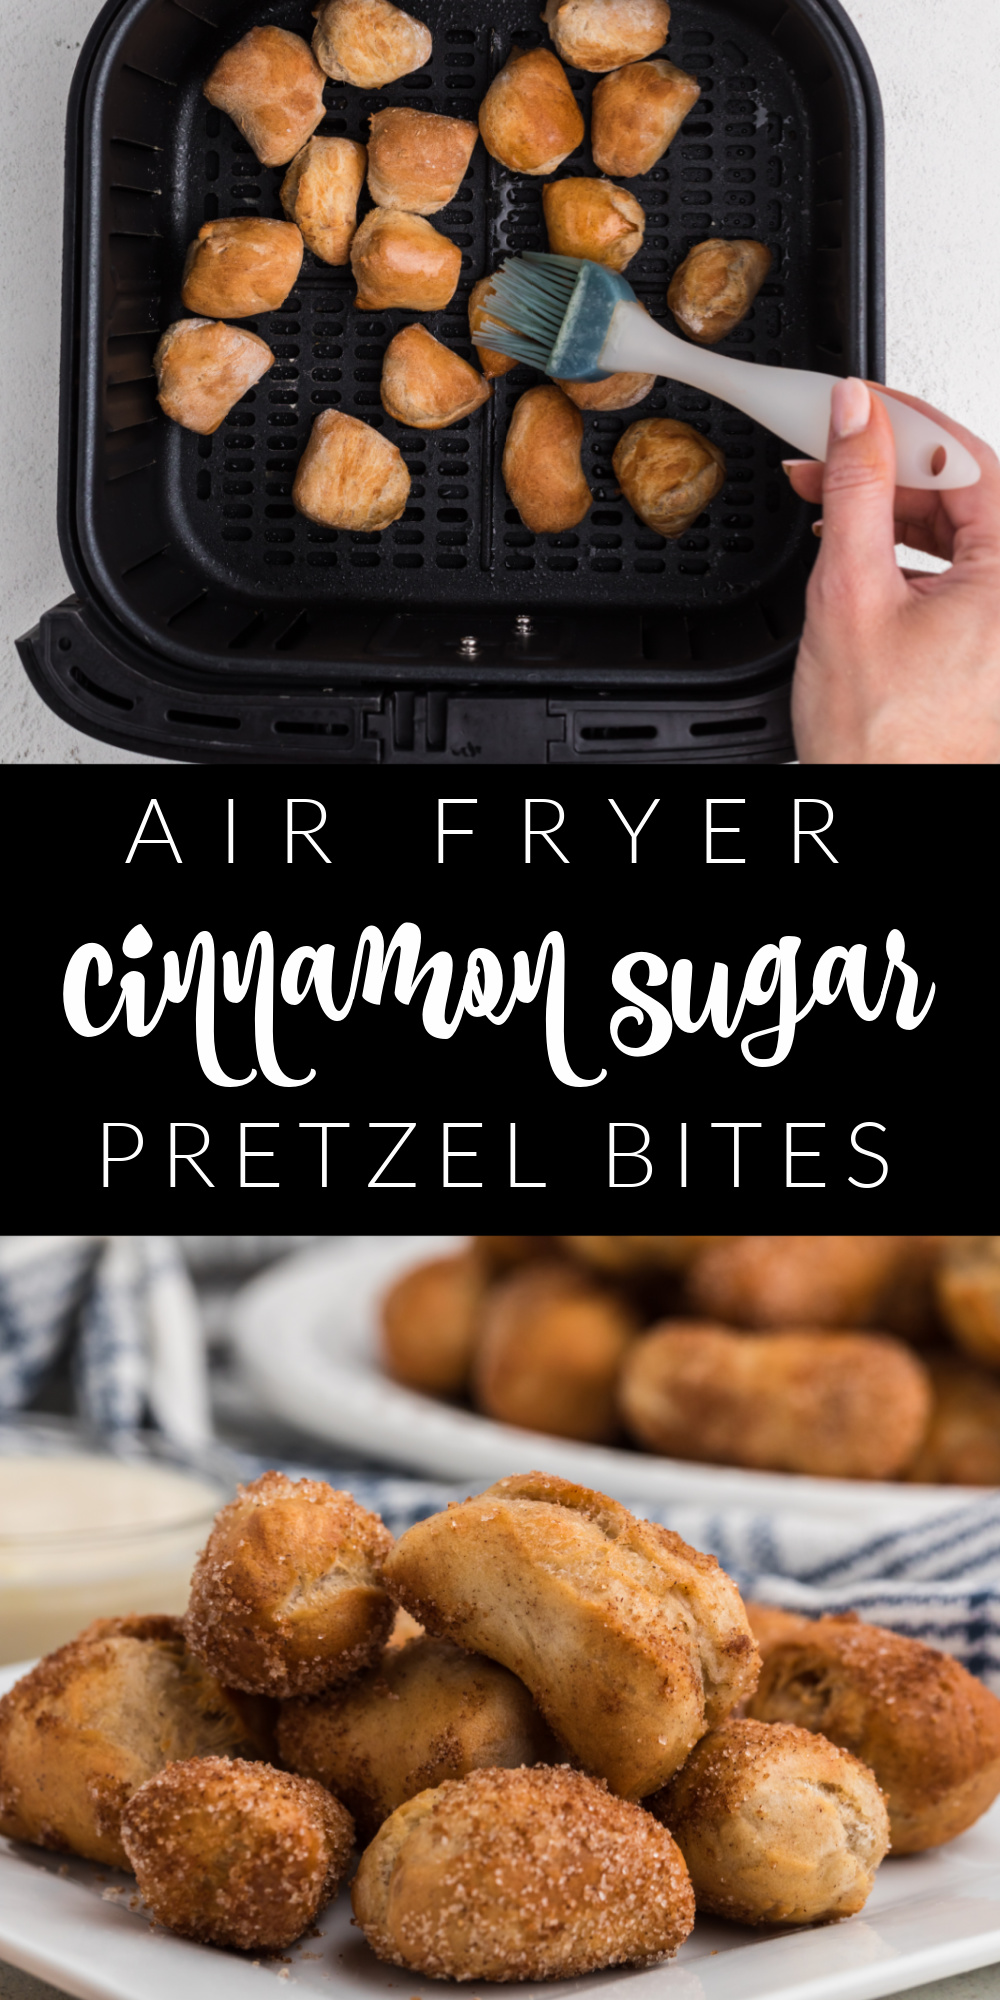 These Air Fryer Cinnamon Sugar Pretzel Bites are made with ease! It's the perfect weekend or after-school snack that everyone will love. An easy air fryer recipe you won't mind making again and again.